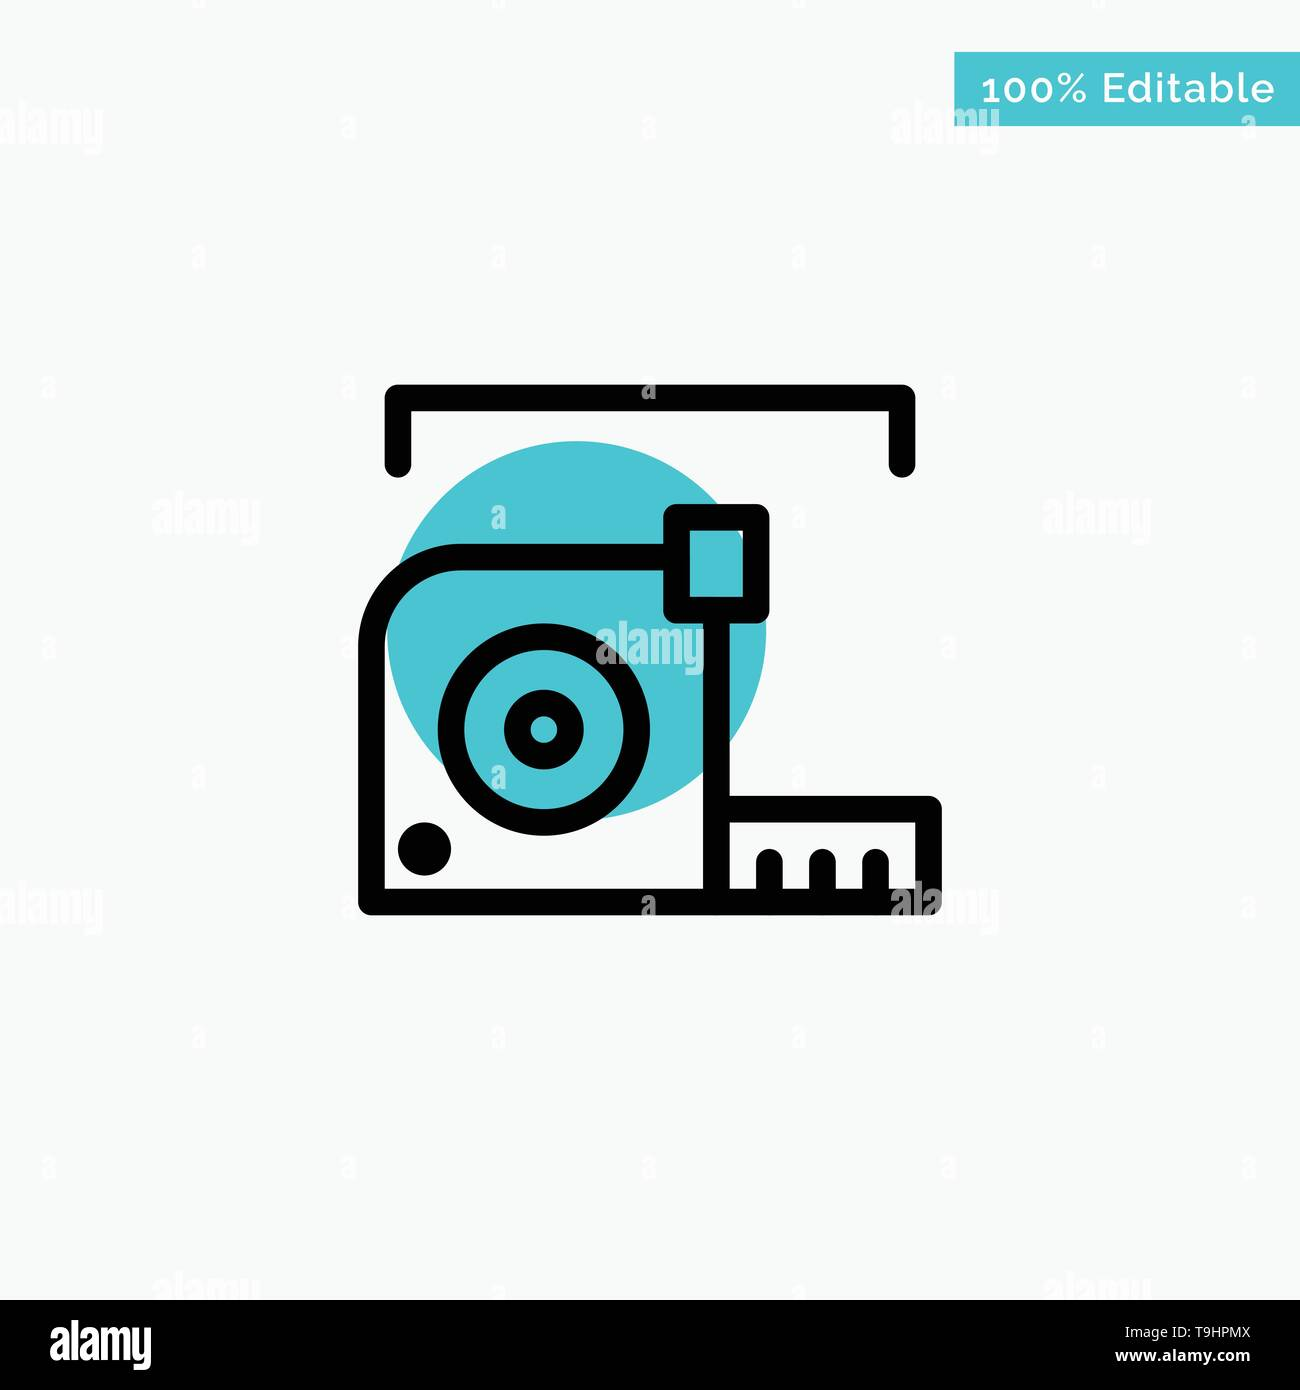 Measure, Measurement, Meter, Roulette, Ruler turquoise highlight circle point Vector icon - Stock Image